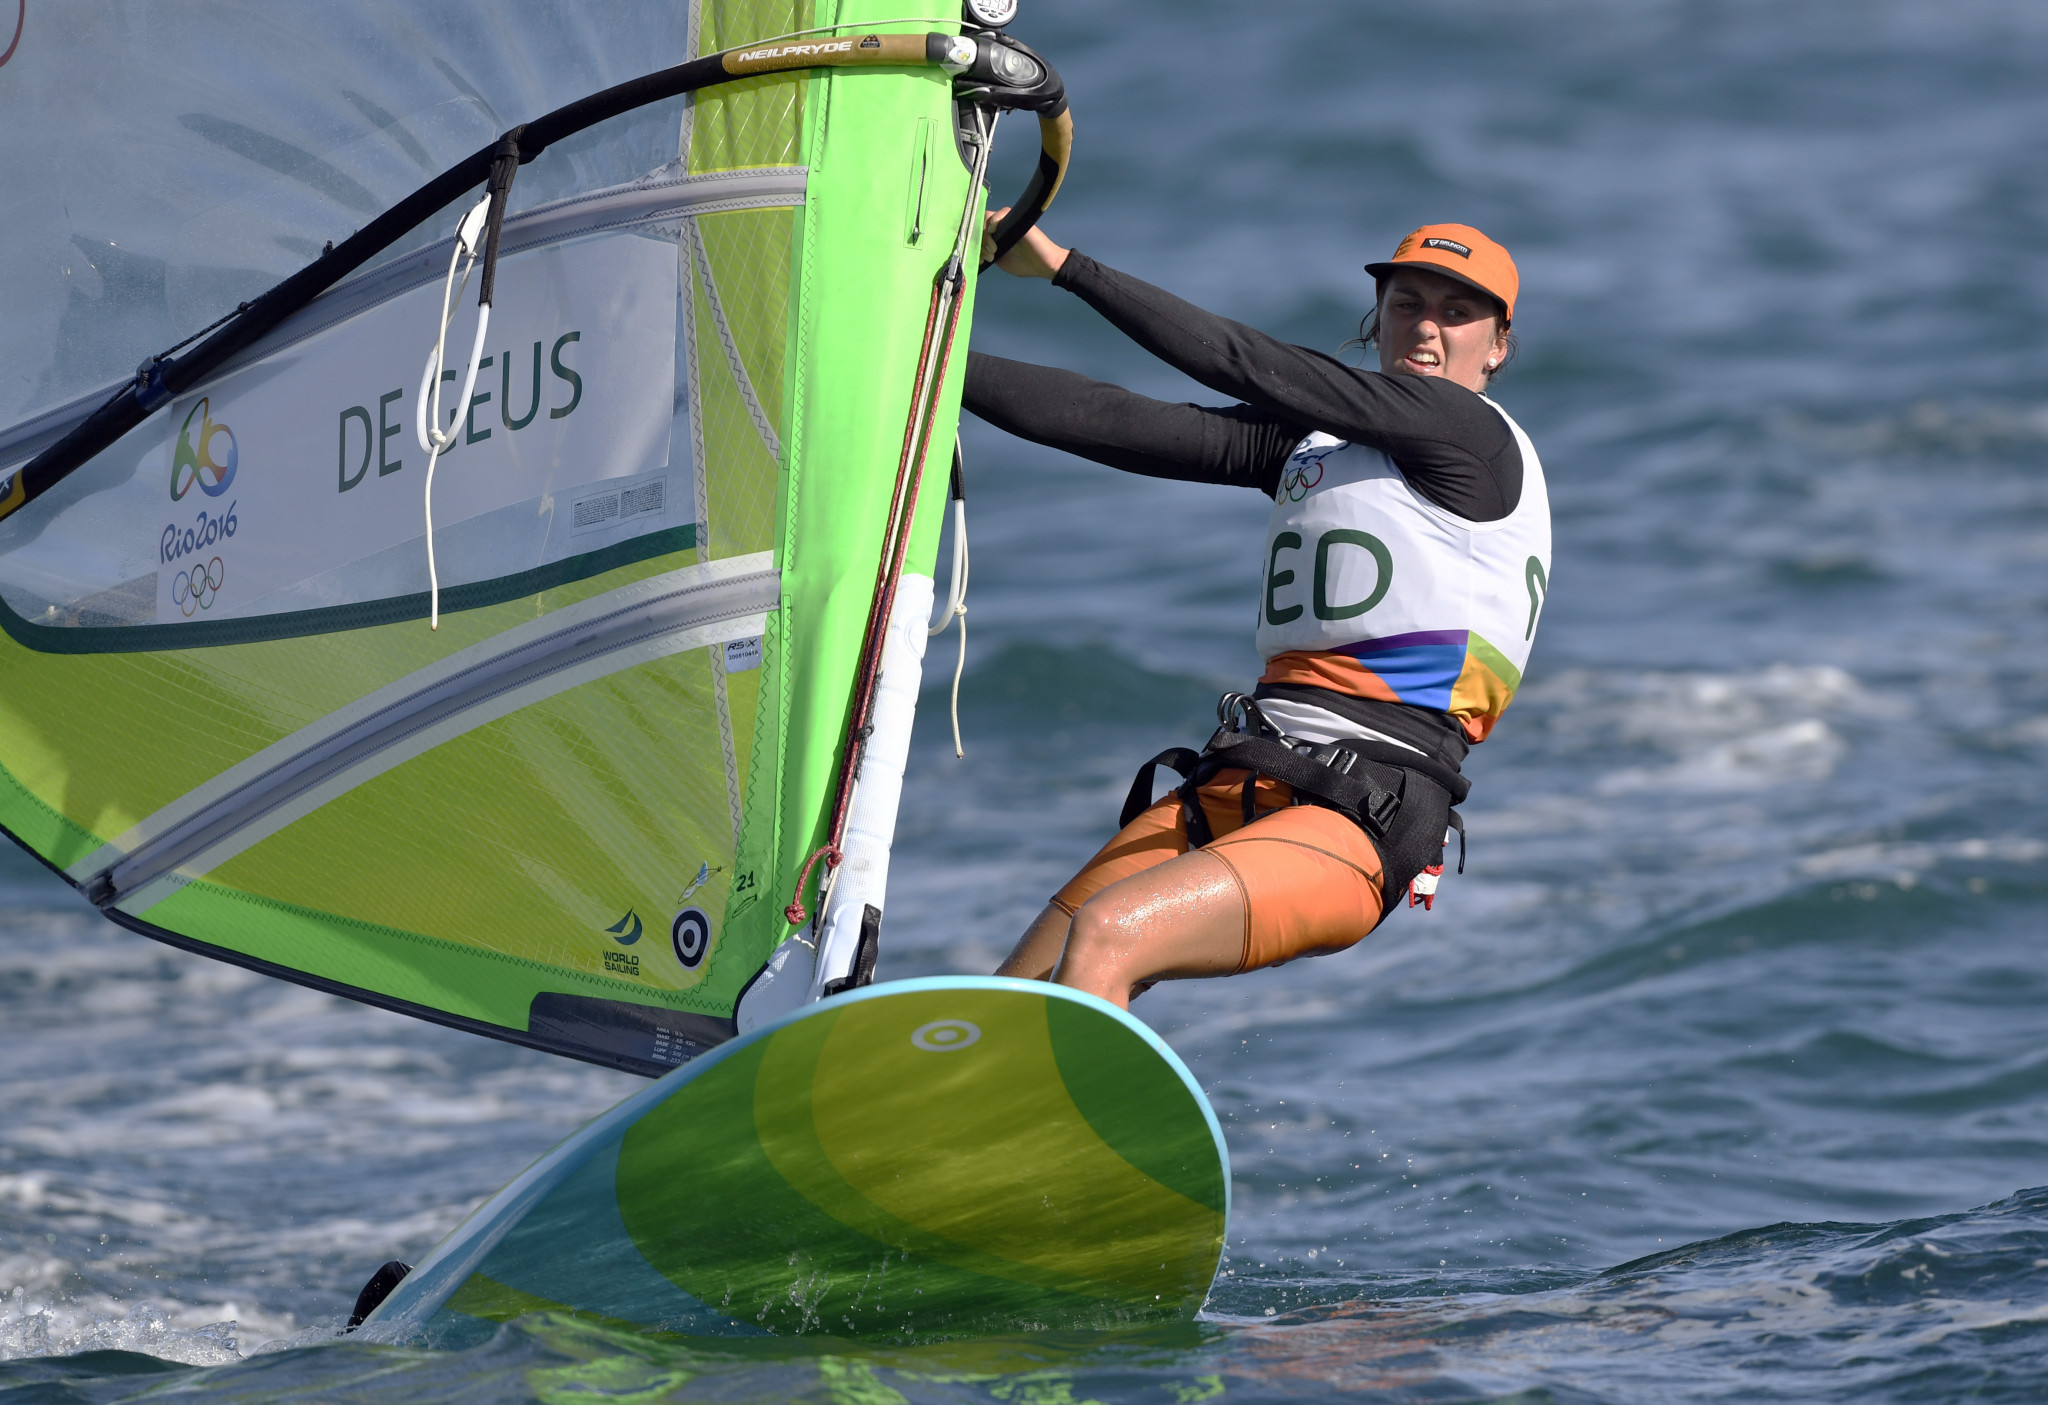 Israel's Drihan retains overall lead at RS:X World Championships